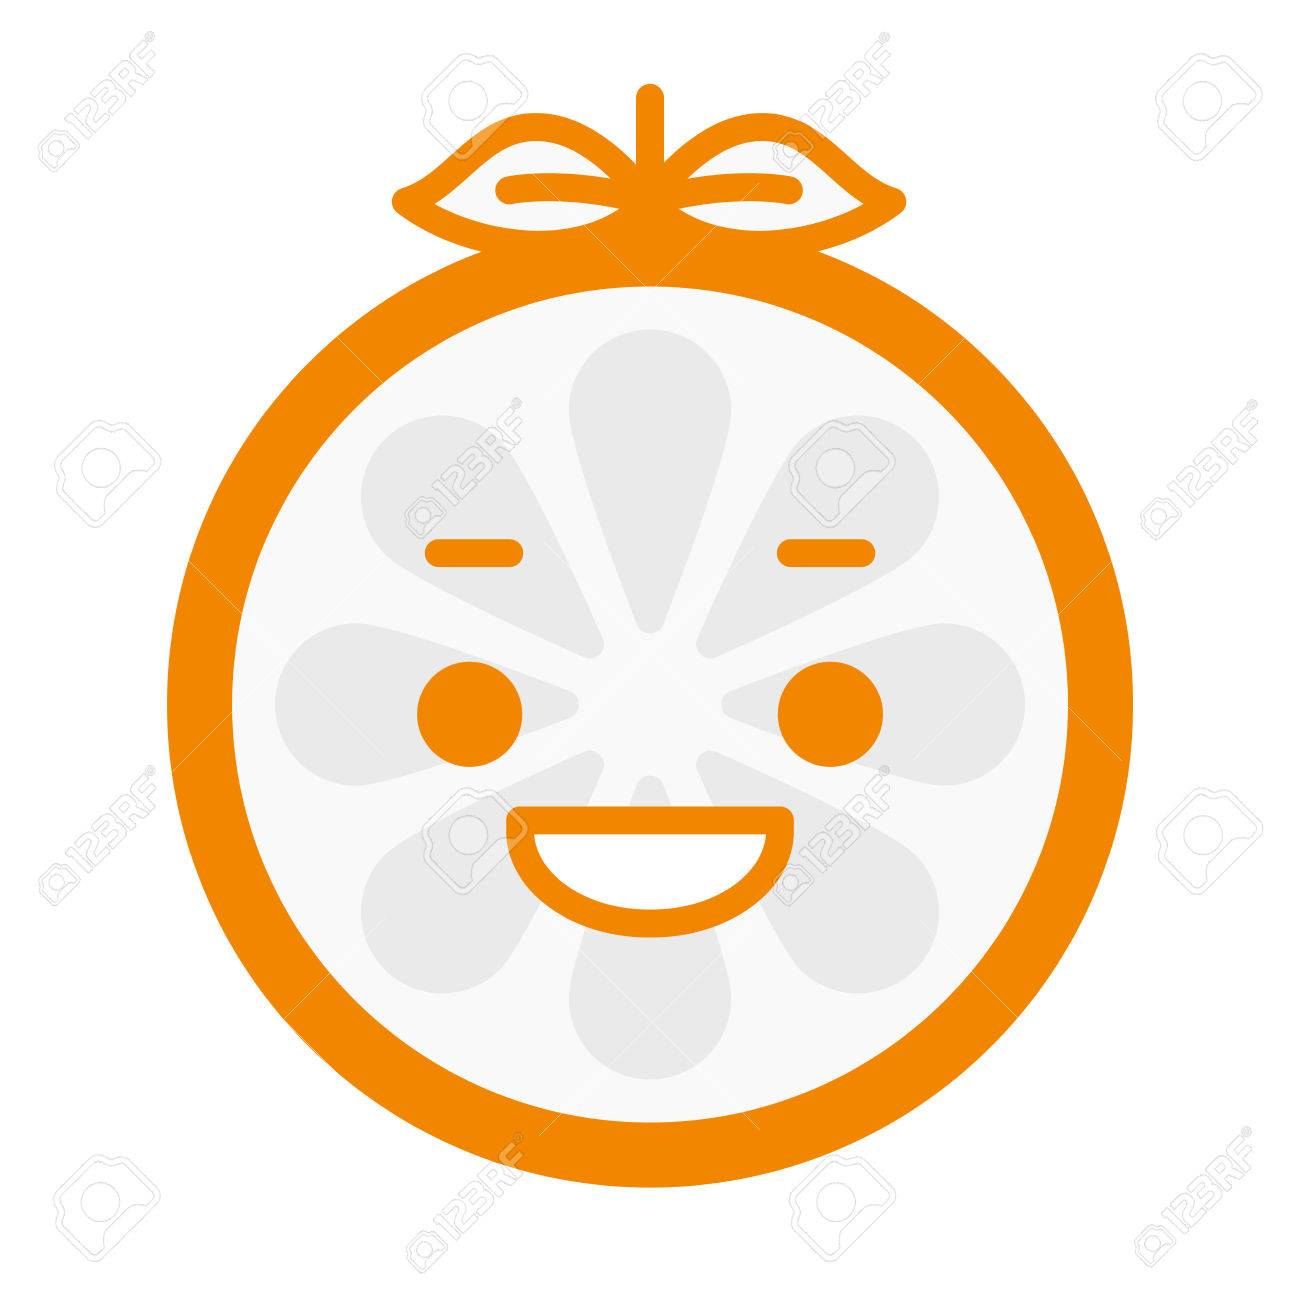 laugh emoji laughing orange fruit emoji vector flat design emoticon icon isolated on white